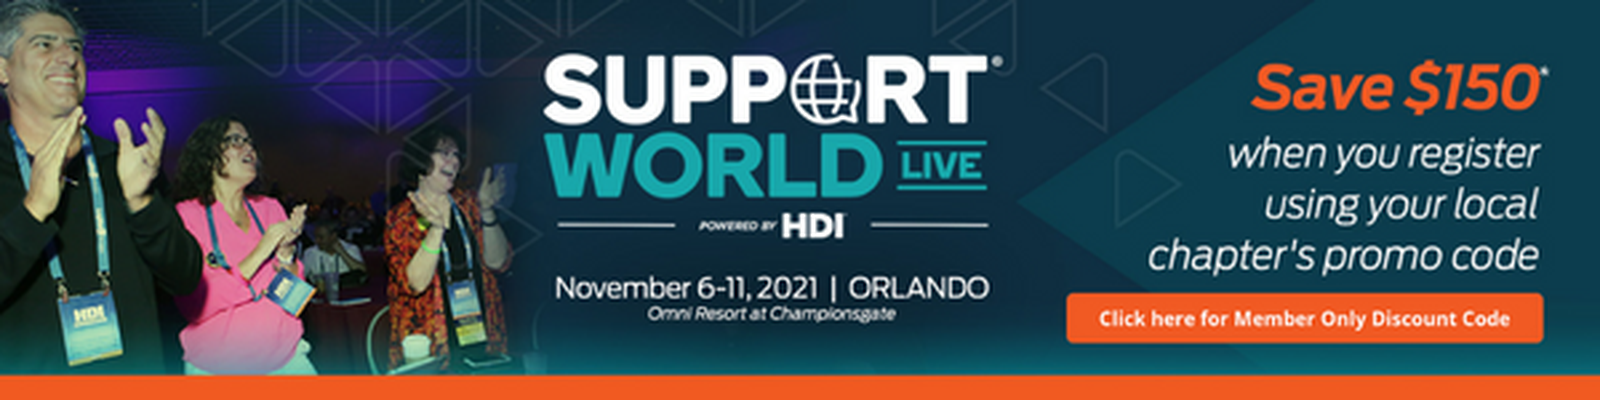 Members receive discounts to Support World Live conference